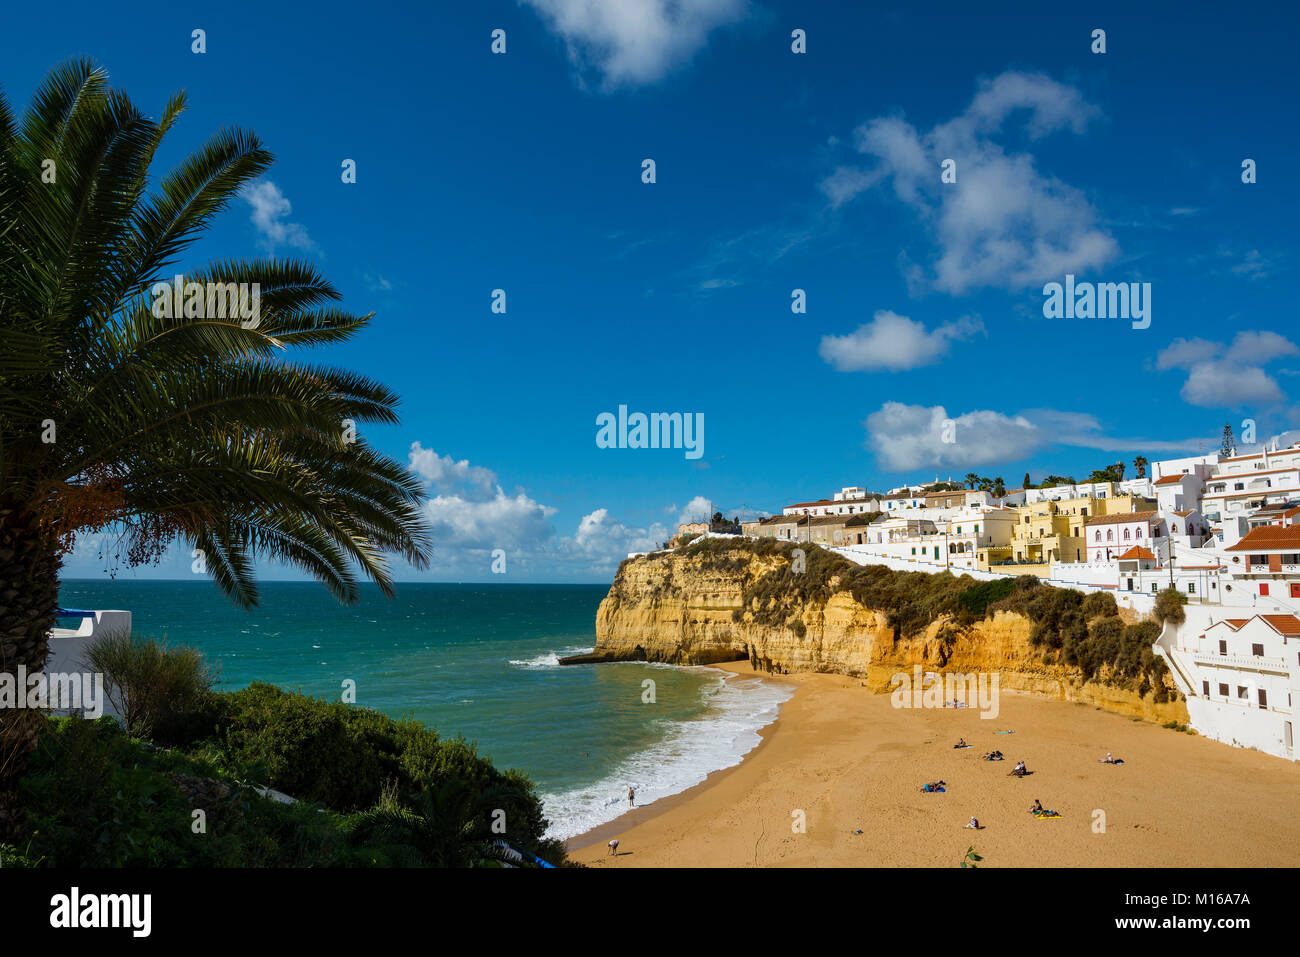 Bay with beach and colourful houses, Carvoeiro, Algarve, Portugal Stock Photo